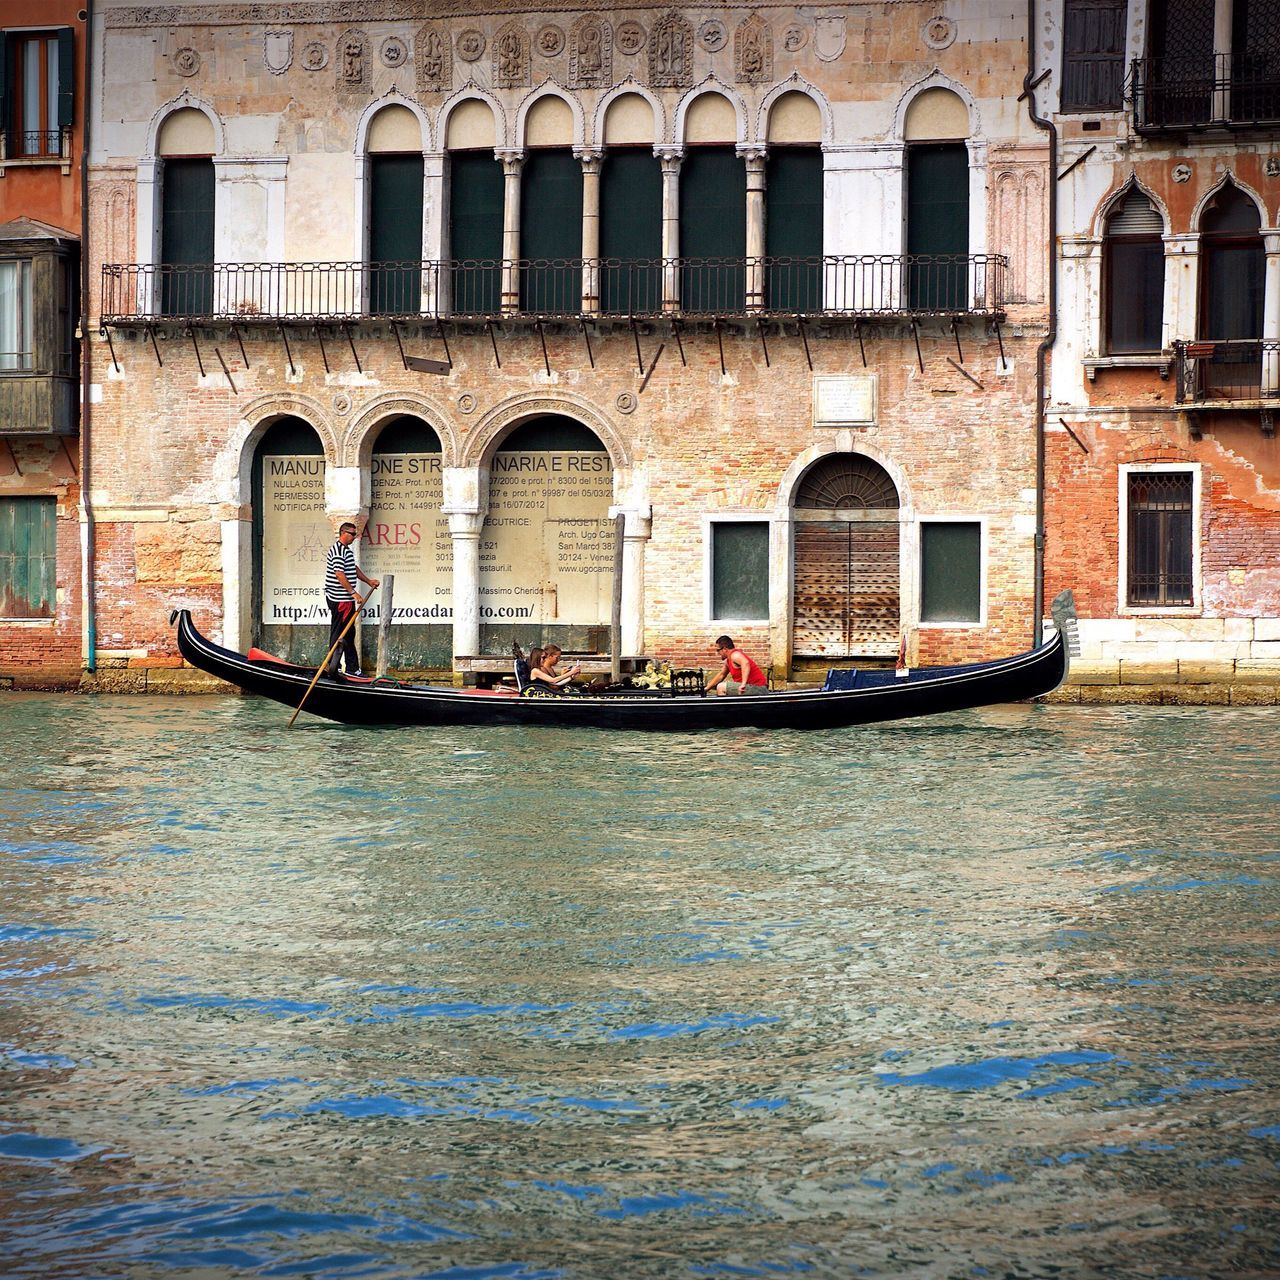 gondola - traditional boat, gondolier, canal, architecture, arch, transportation, tourism, nautical vessel, outdoors, men, travel destinations, building exterior, travel, gondola, day, built structure, real people, water, adult, adults only, people